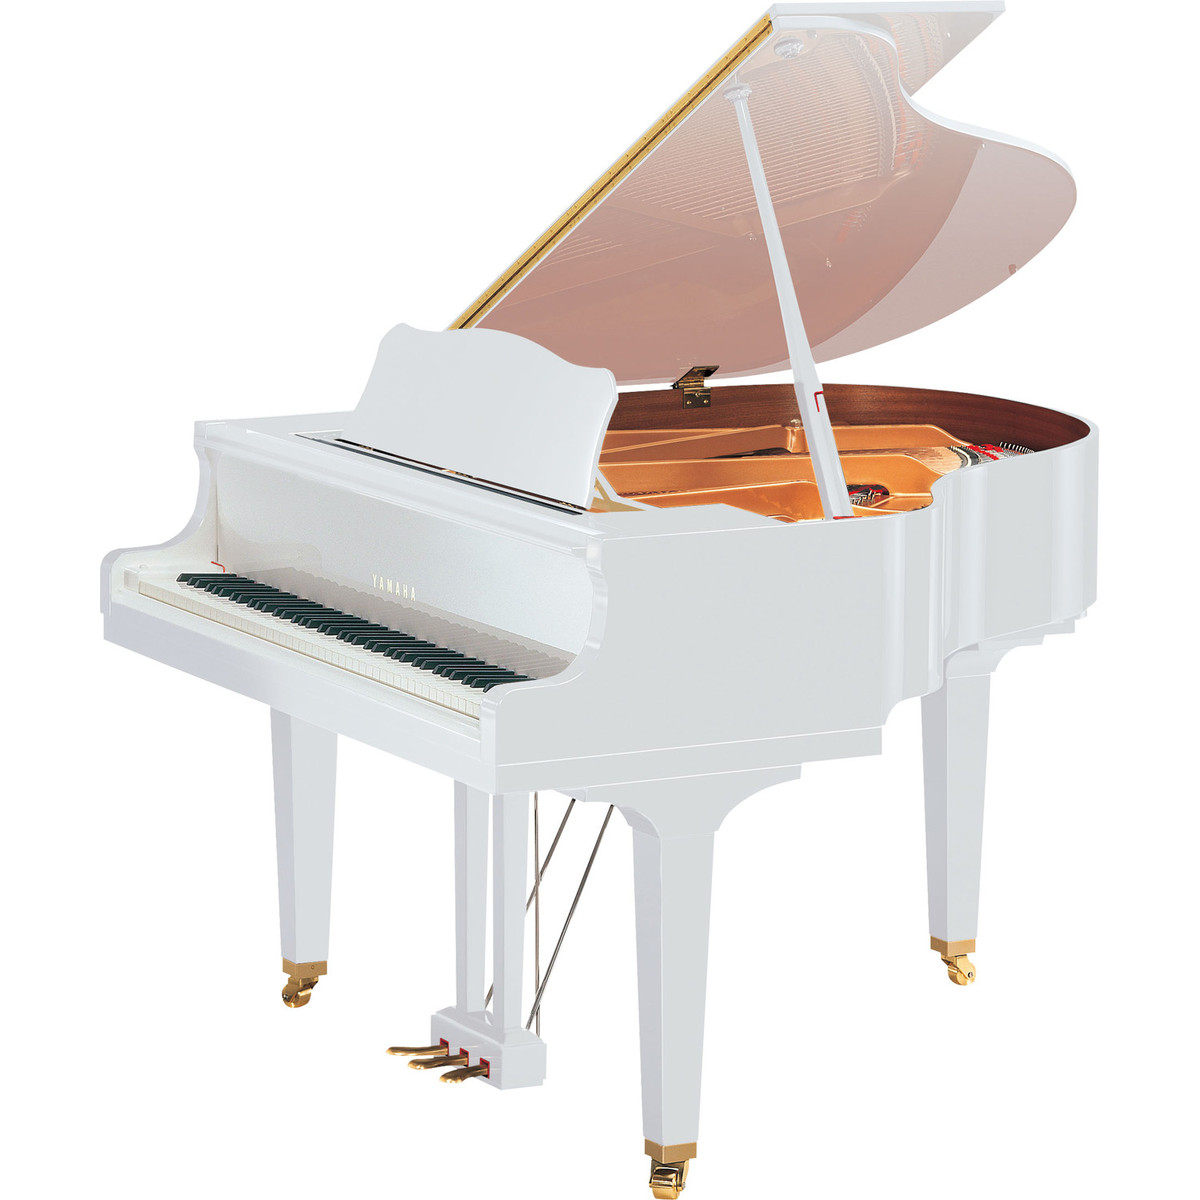 Piano queue yamaha g s rie gb1k blanc brillant - Costo ascensore interno 1 piano ...